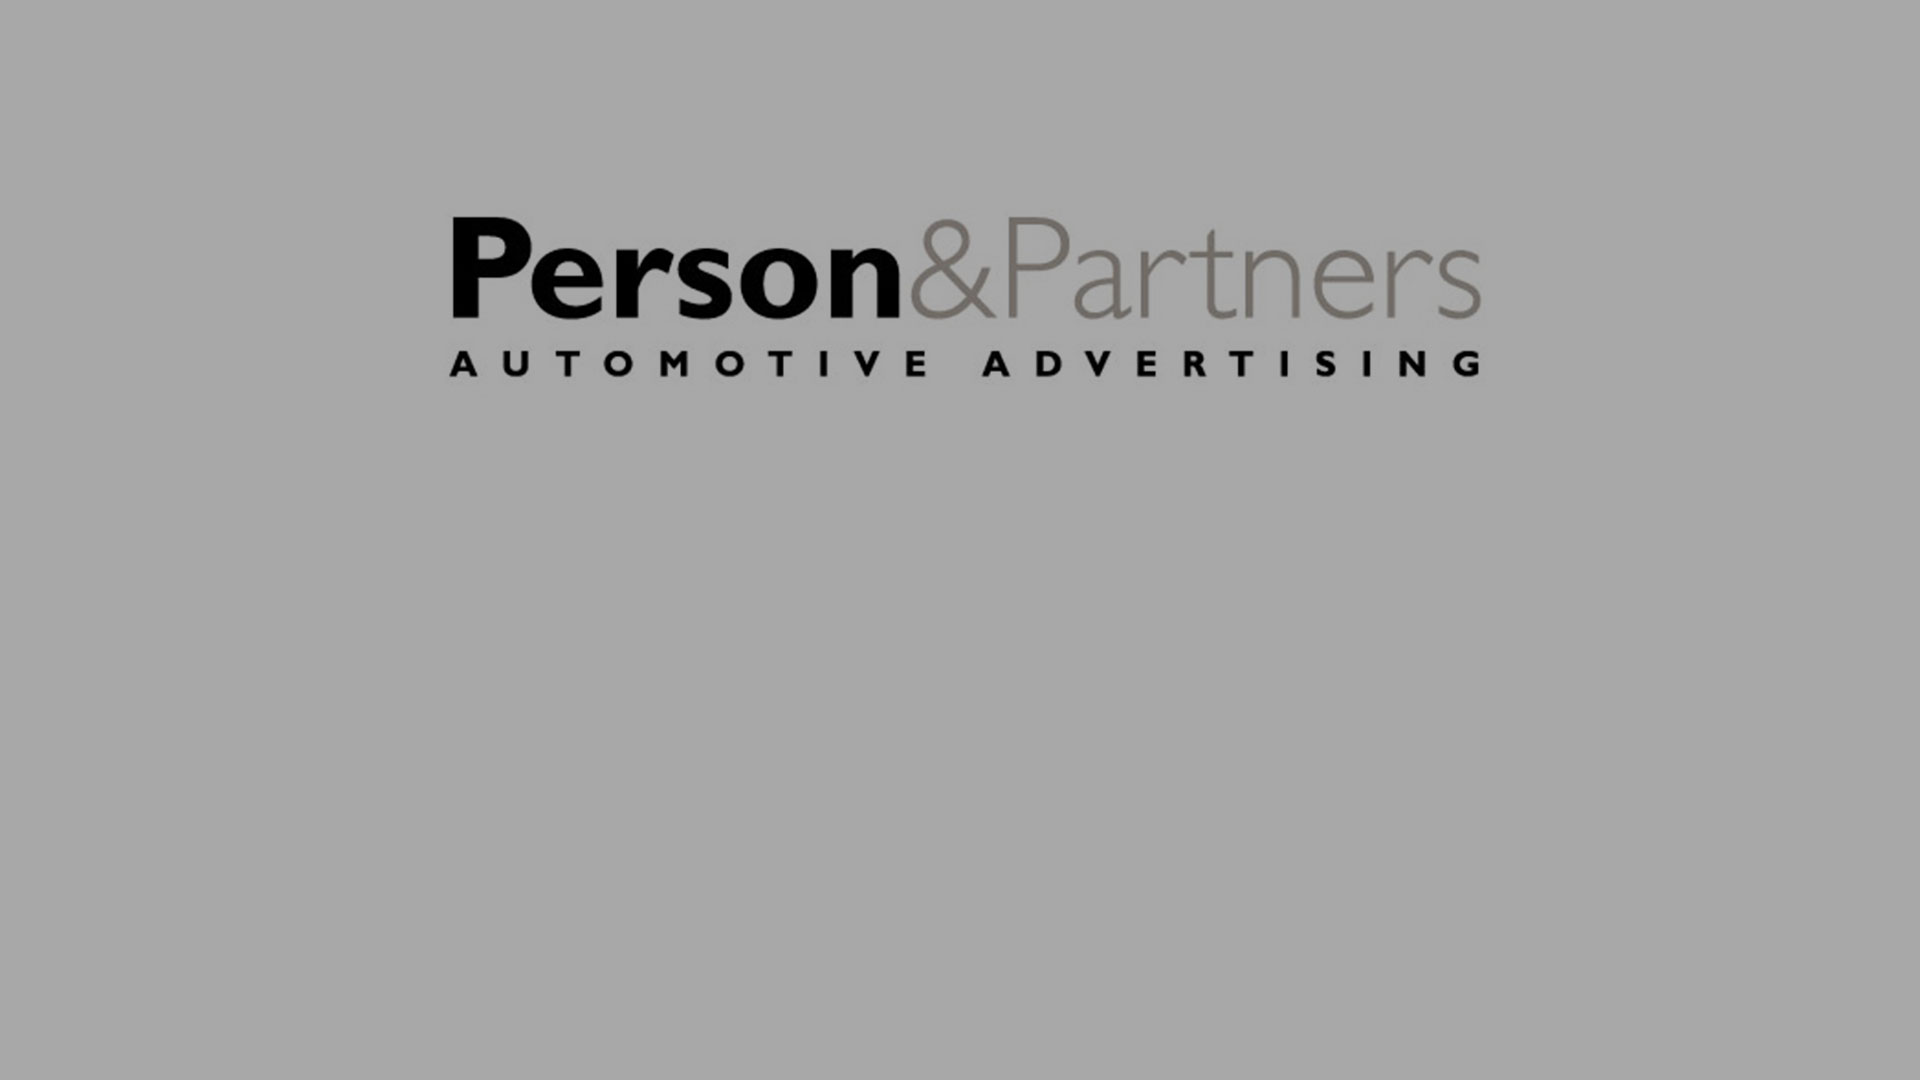 Person & Partners logo